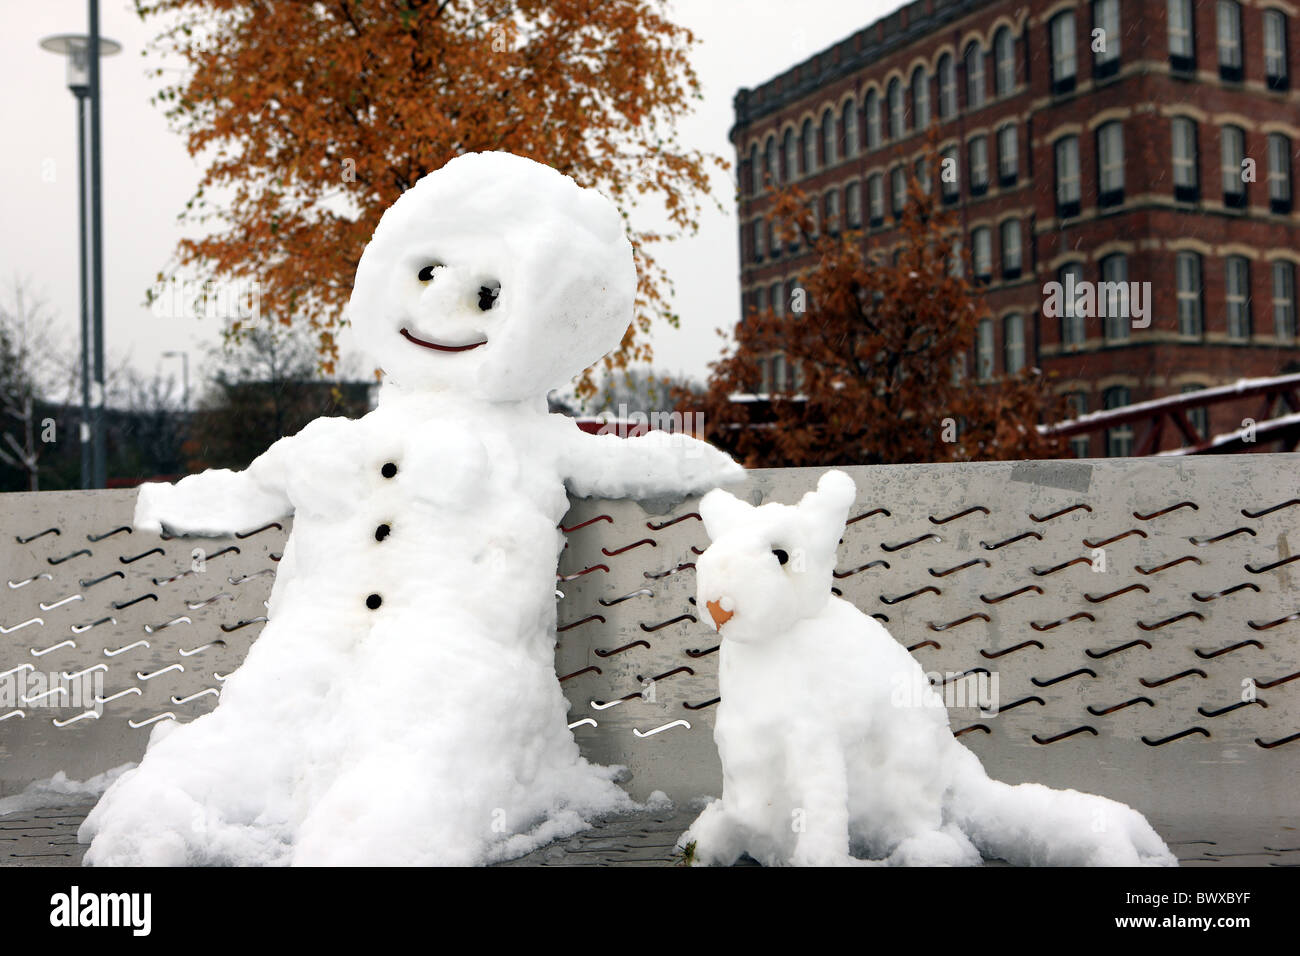 Snowman and dog sitting on a park bench - Stock Image